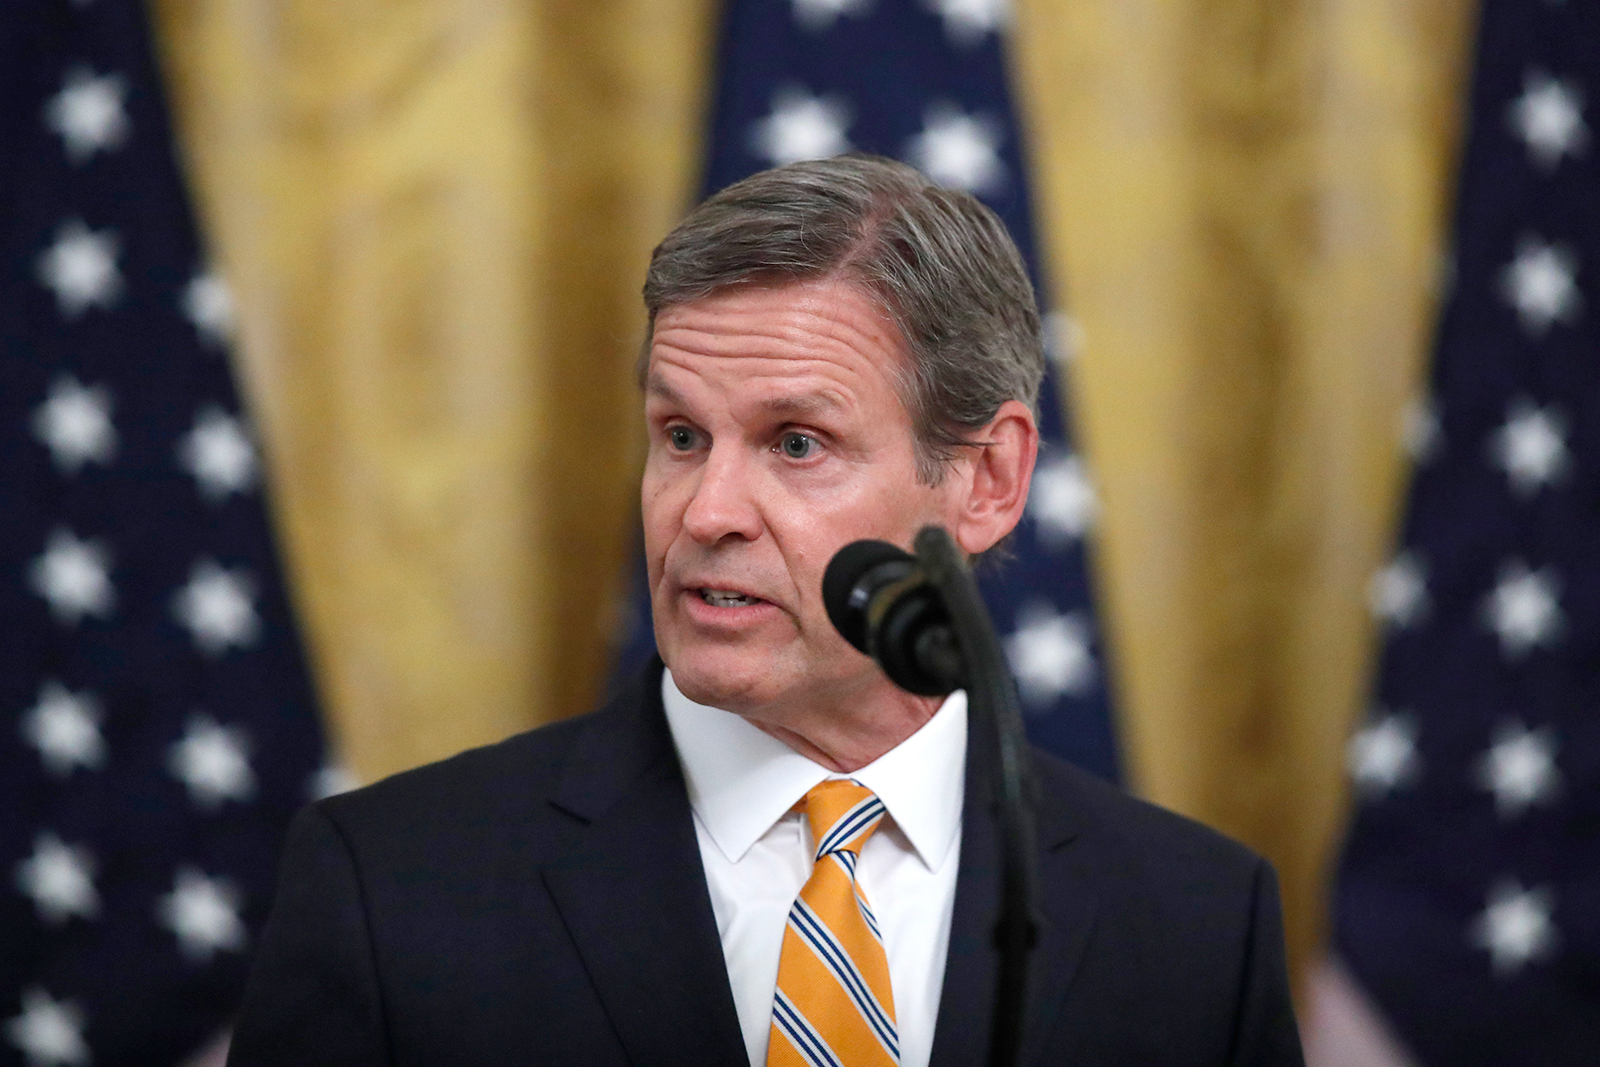 Tennessee Gov. Bill Lee speaks in the East Room of the White House in Washington DC on April 30.